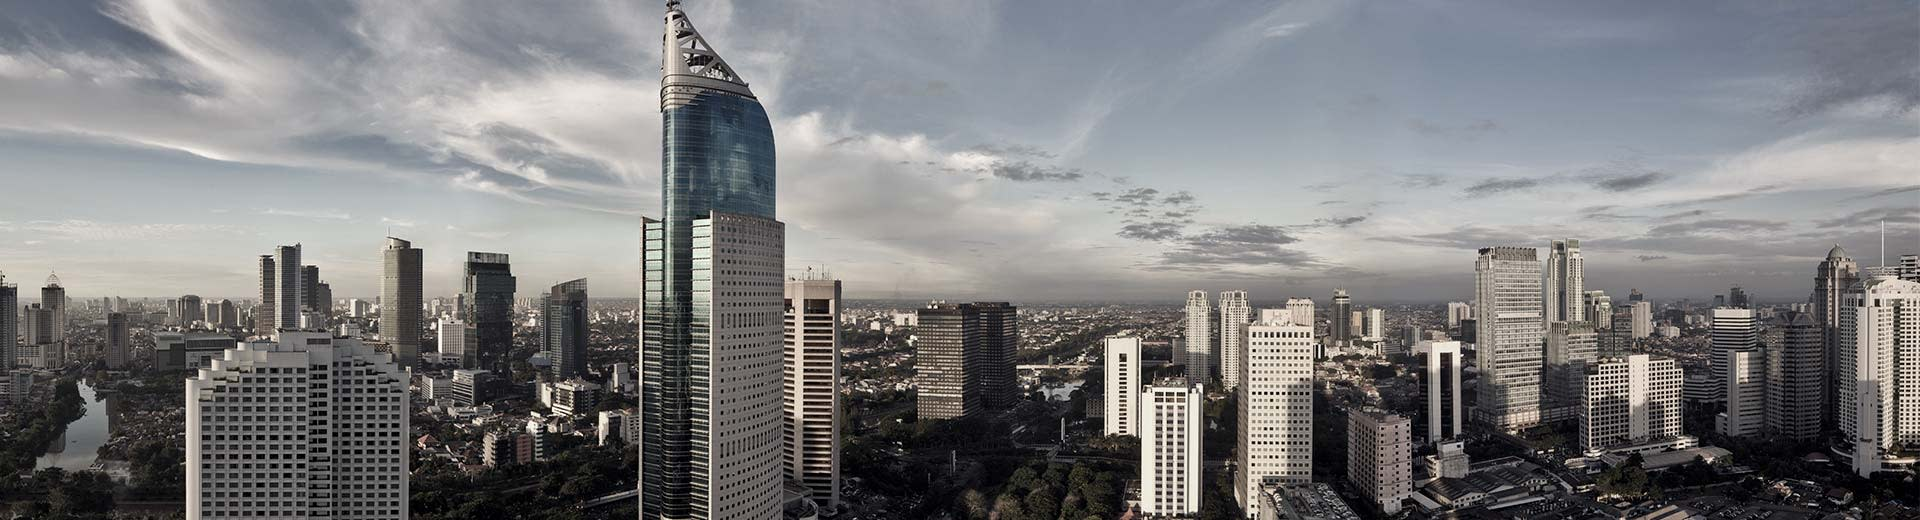 The sprawling mass of Jakarta stretches as far as the eye can see